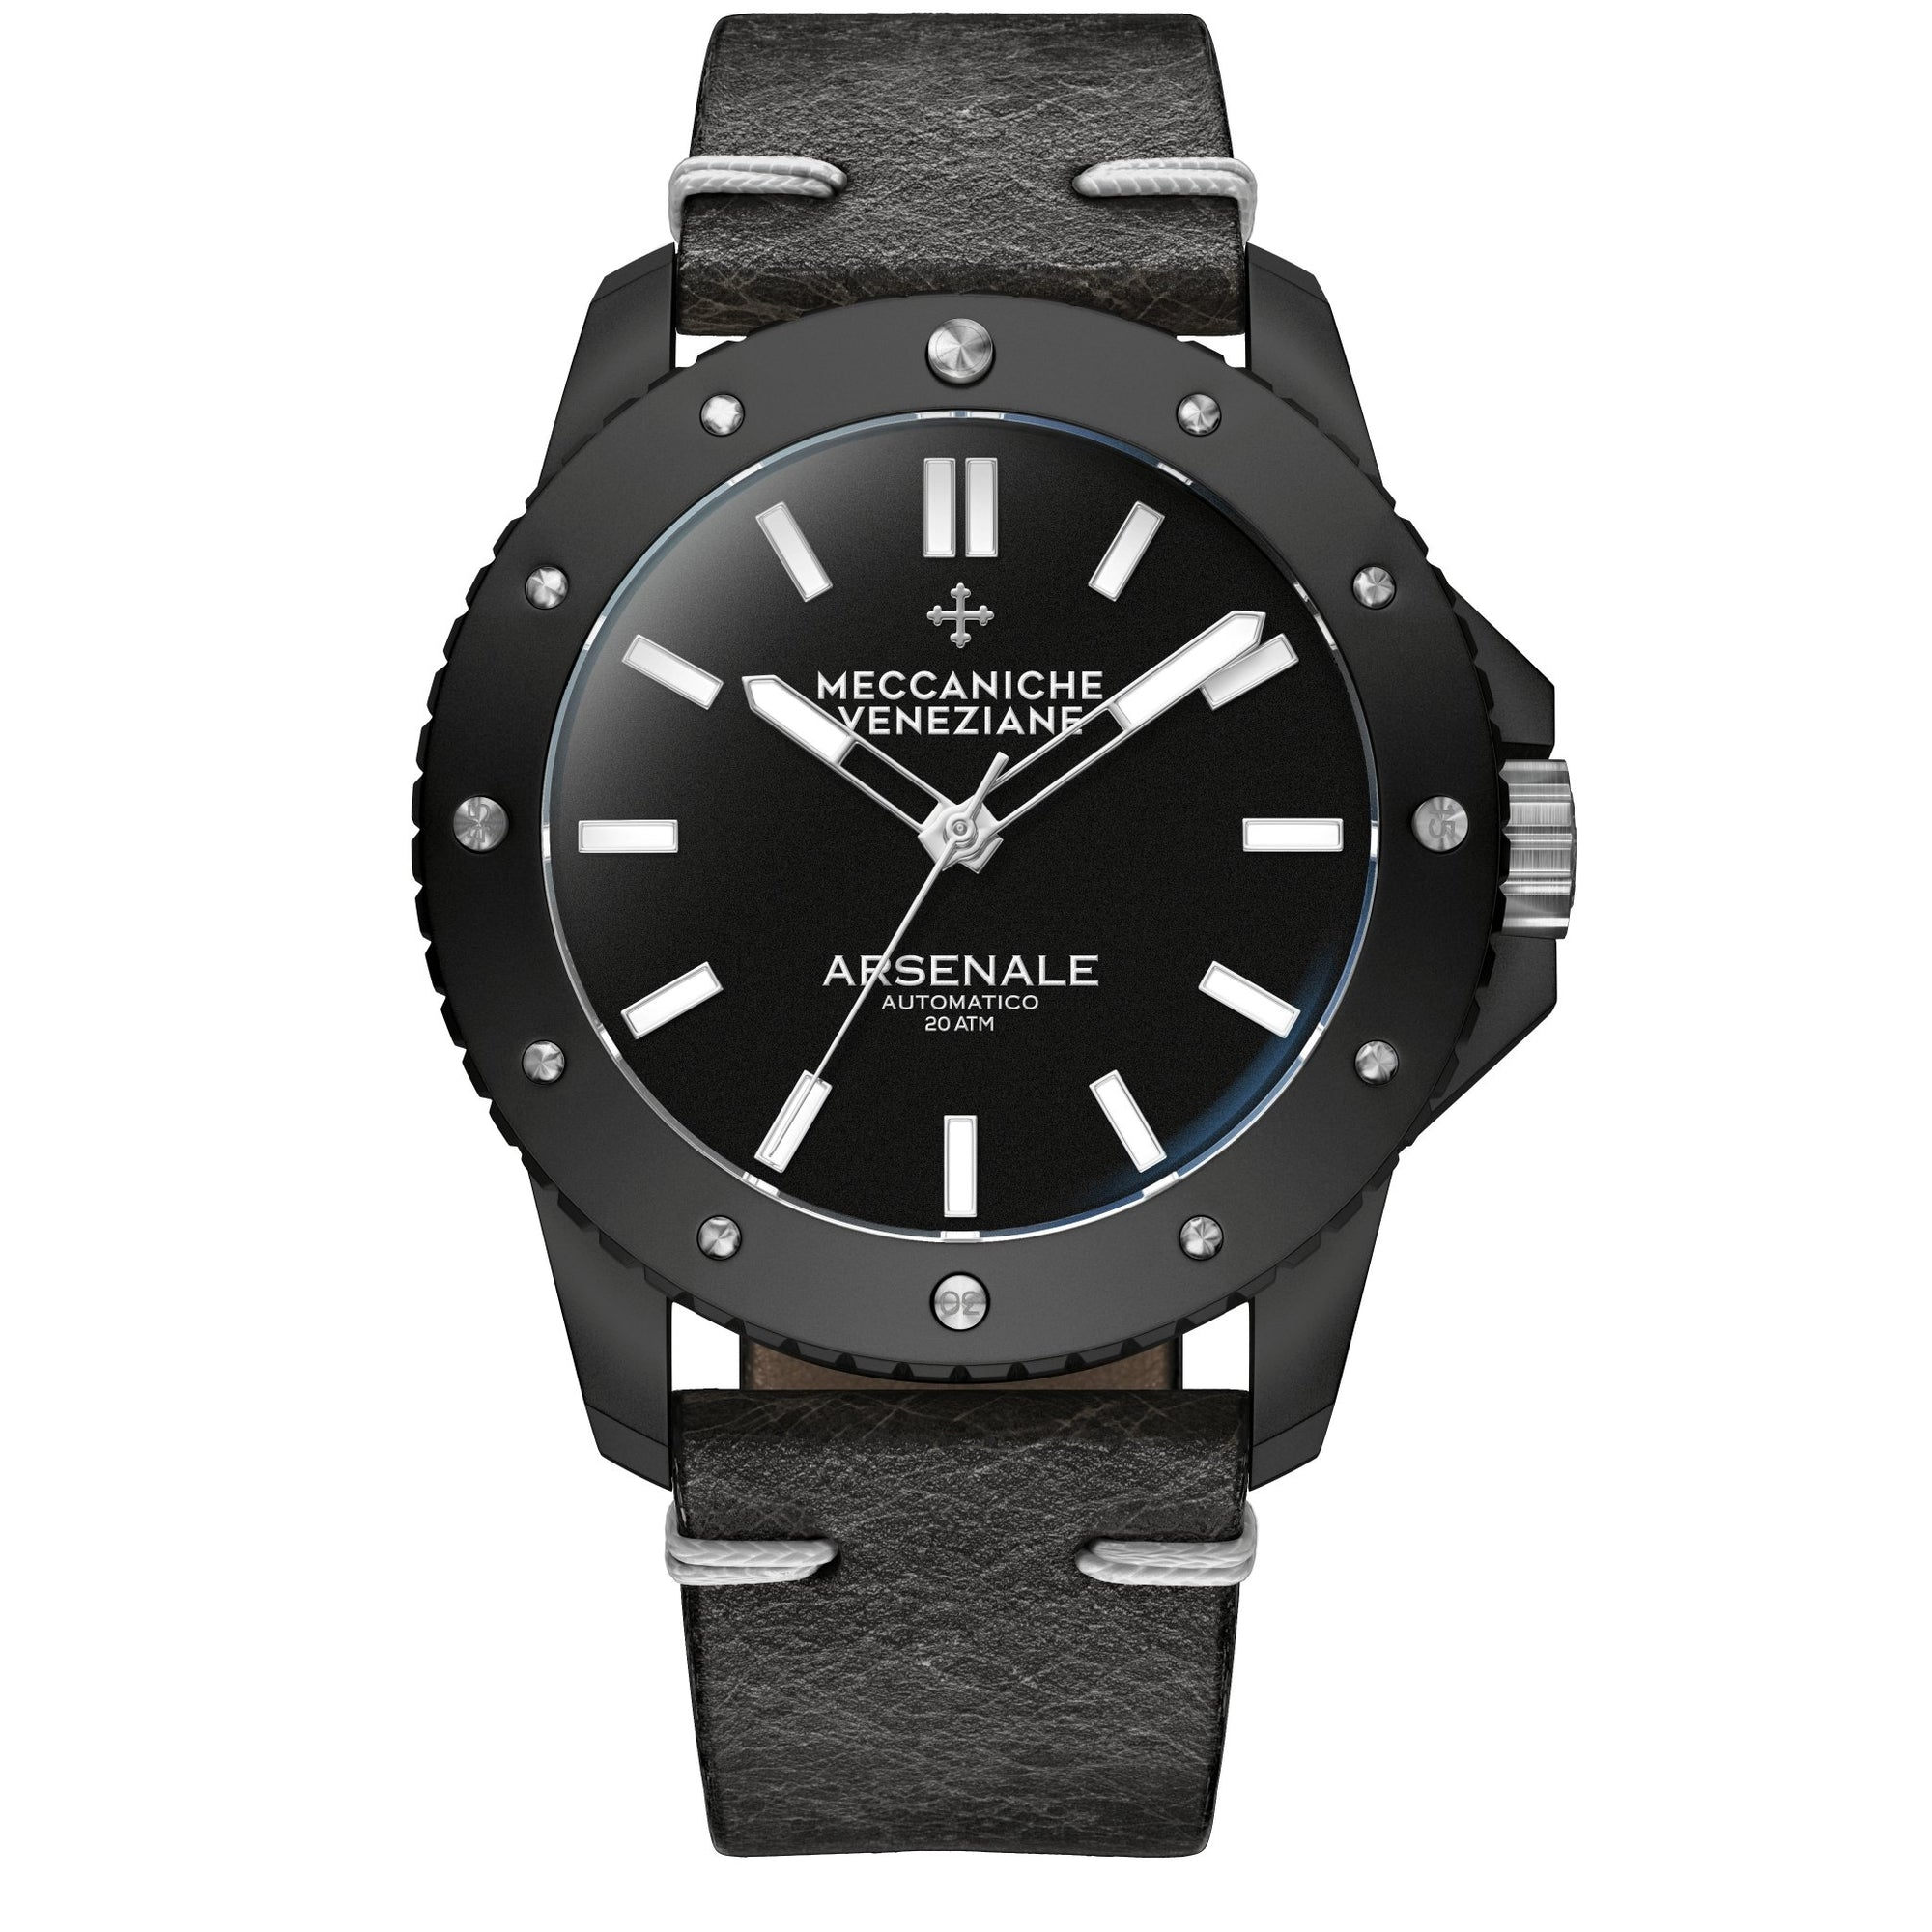 Meccaniche Veneziane Arsenale Triple Black - Watches & Crystals